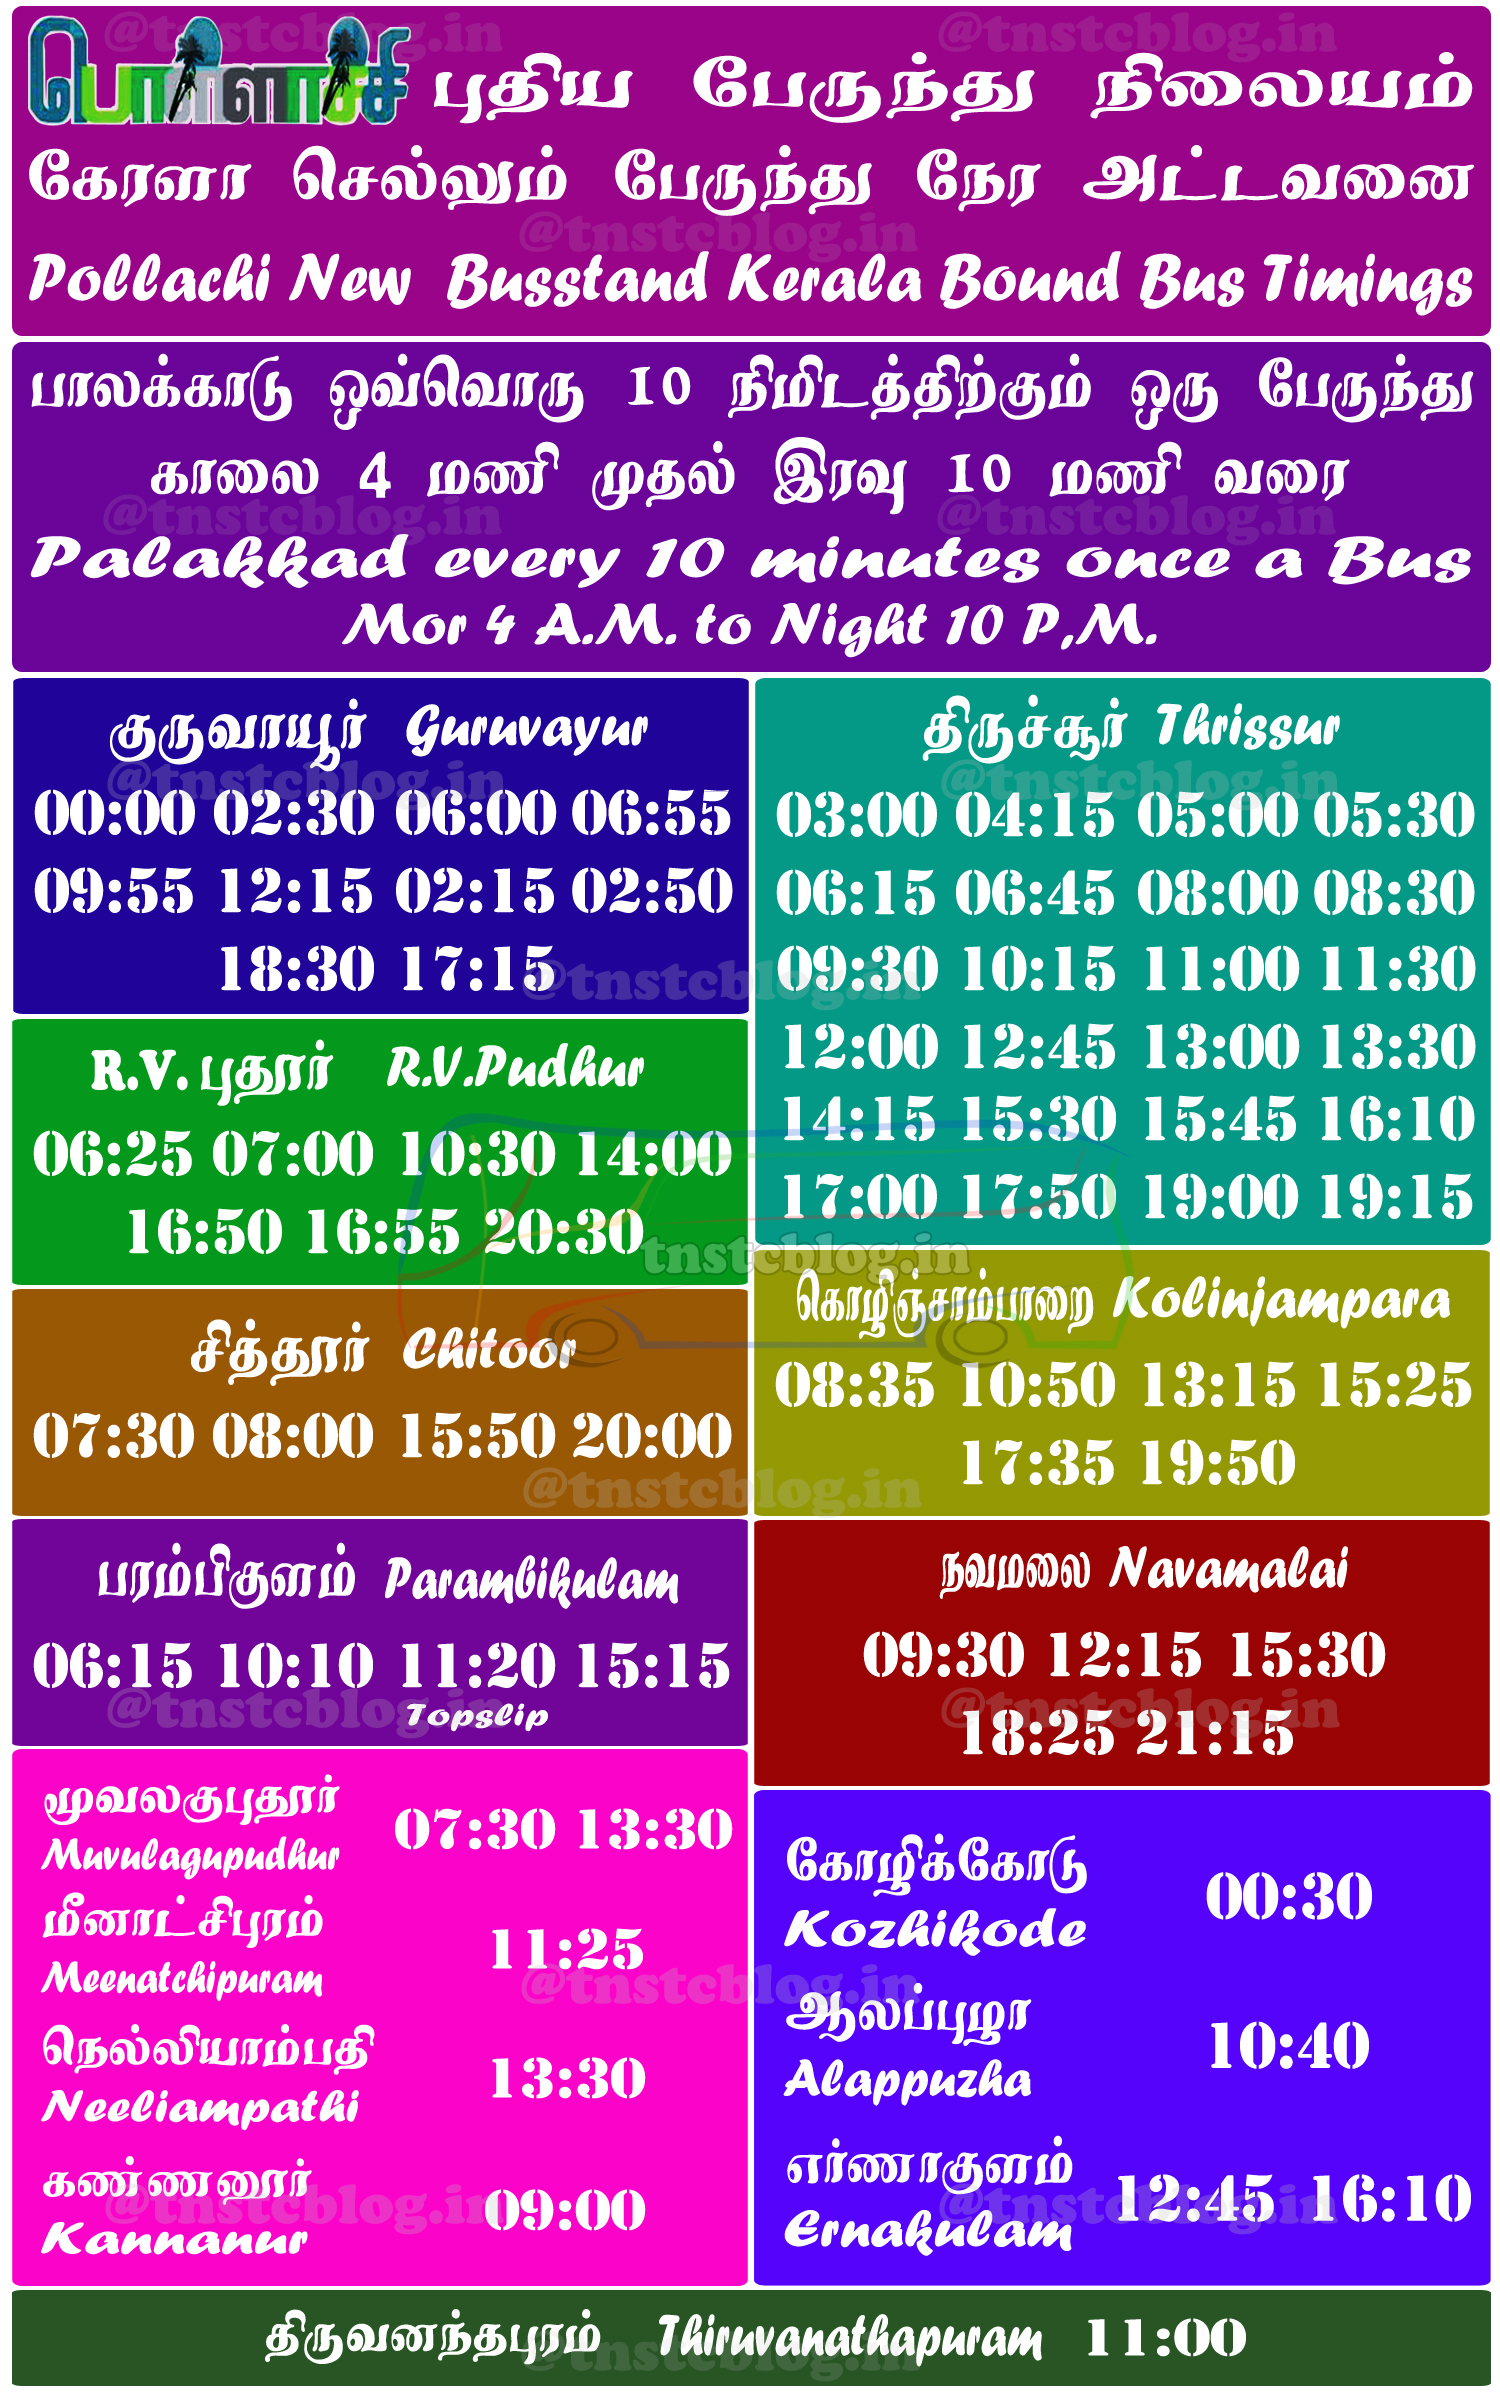 Kerala Timings from Pollachi